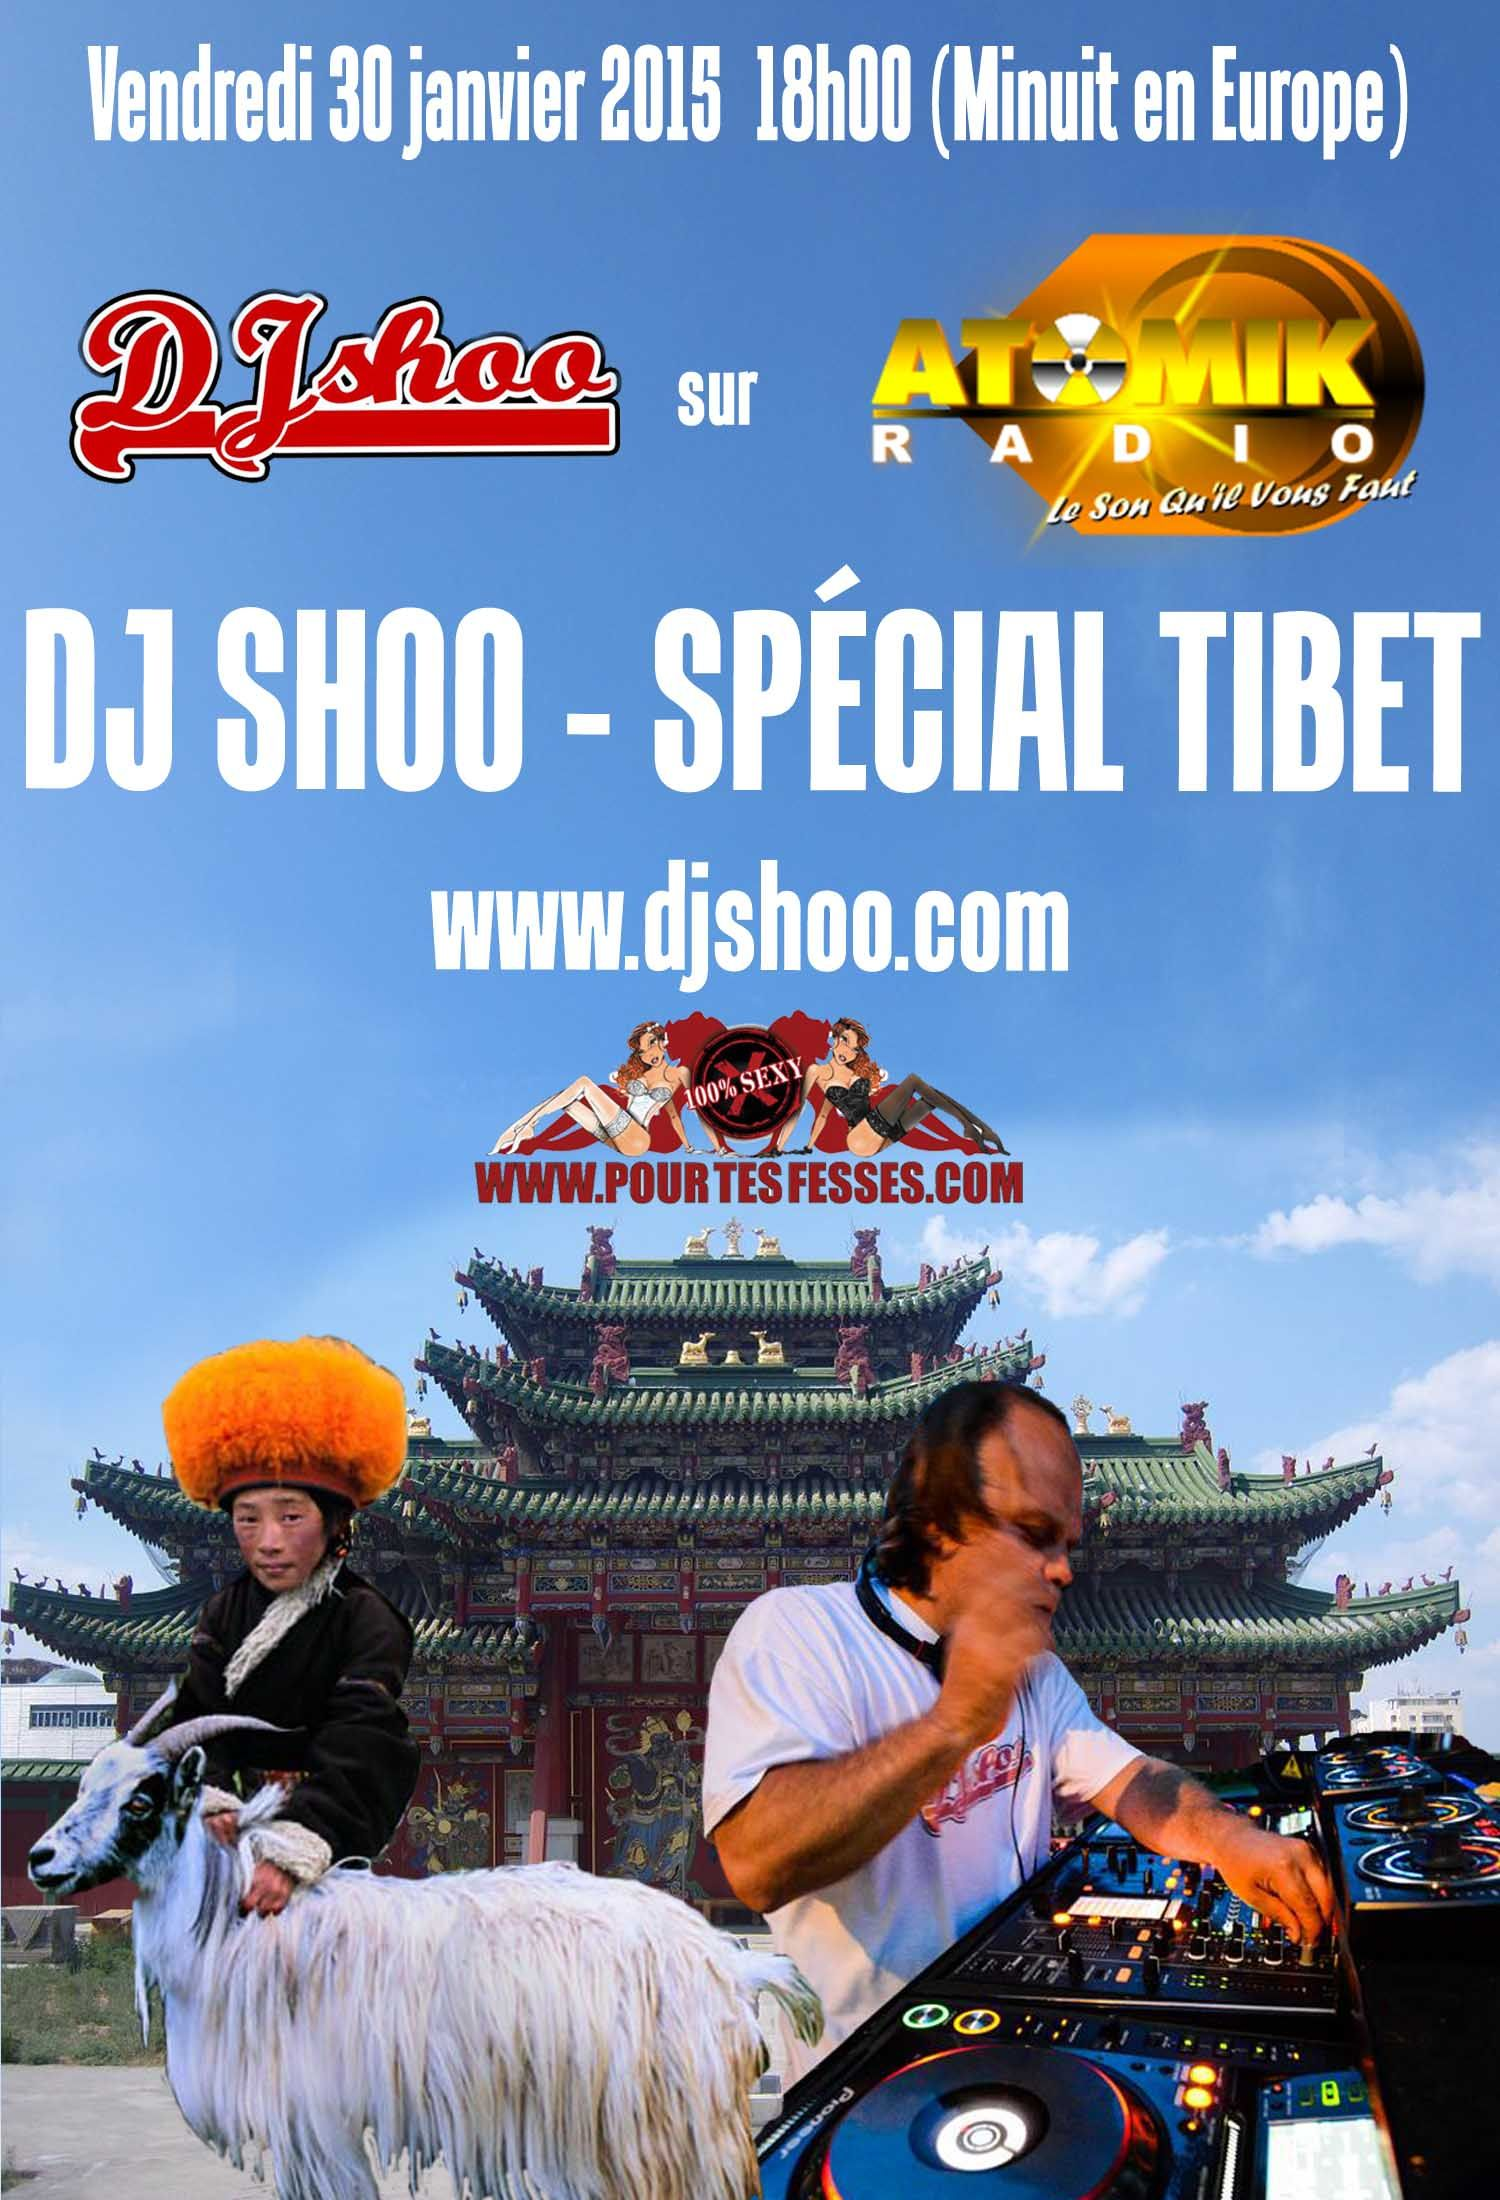 Special TIBET whith DJ SHOO on Atomik Radio this friday 18h00 (midnight in Europe) Best new stuff of the week. www.djshoo.com